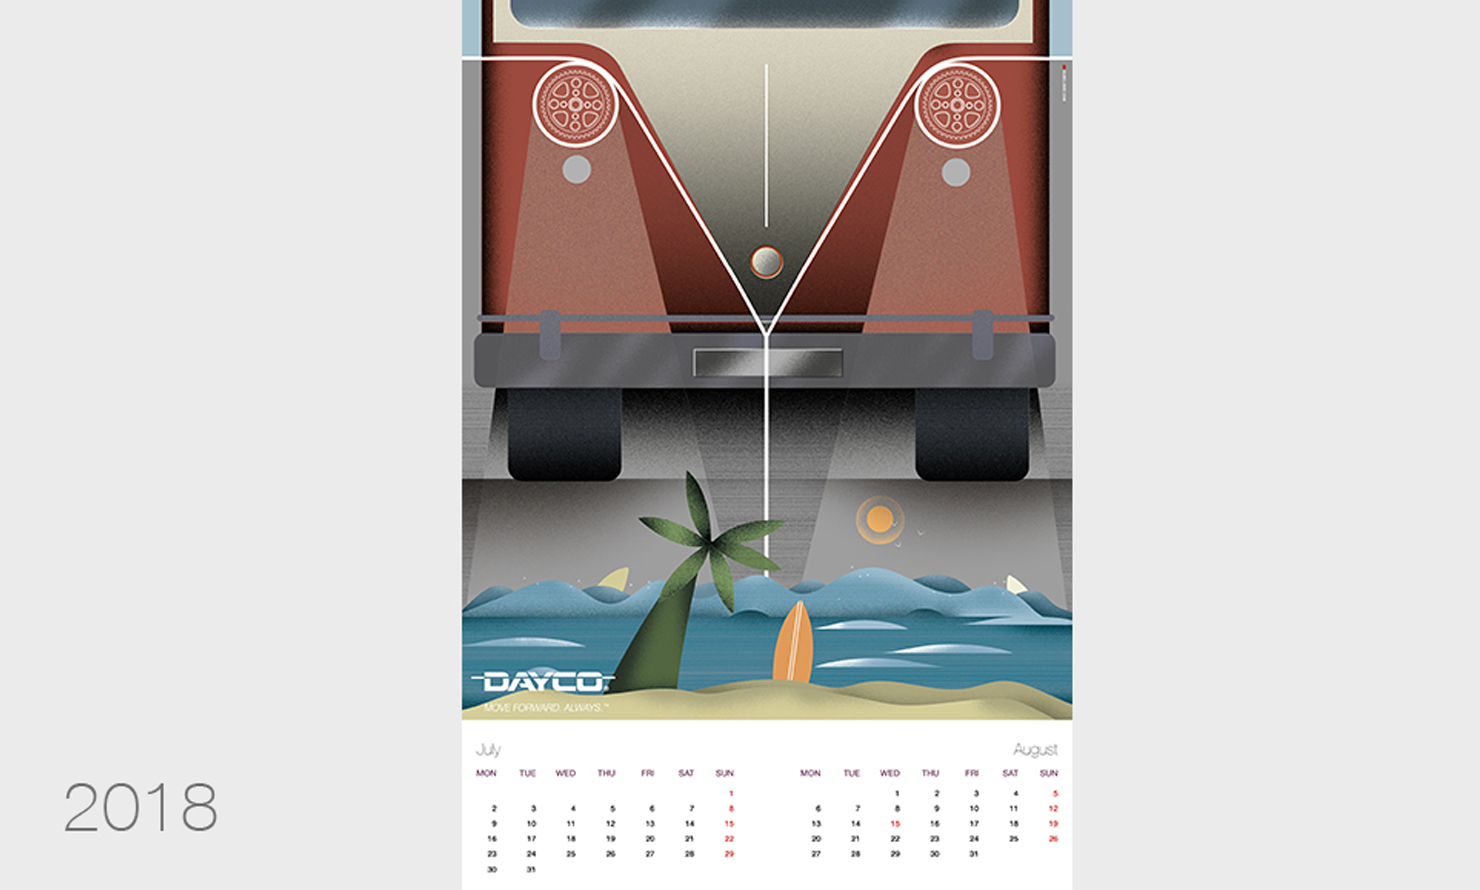 https://kubelibre.com/uploads/Slider-work-tutti-clienti/dayco-calendario-2018-4.jpg